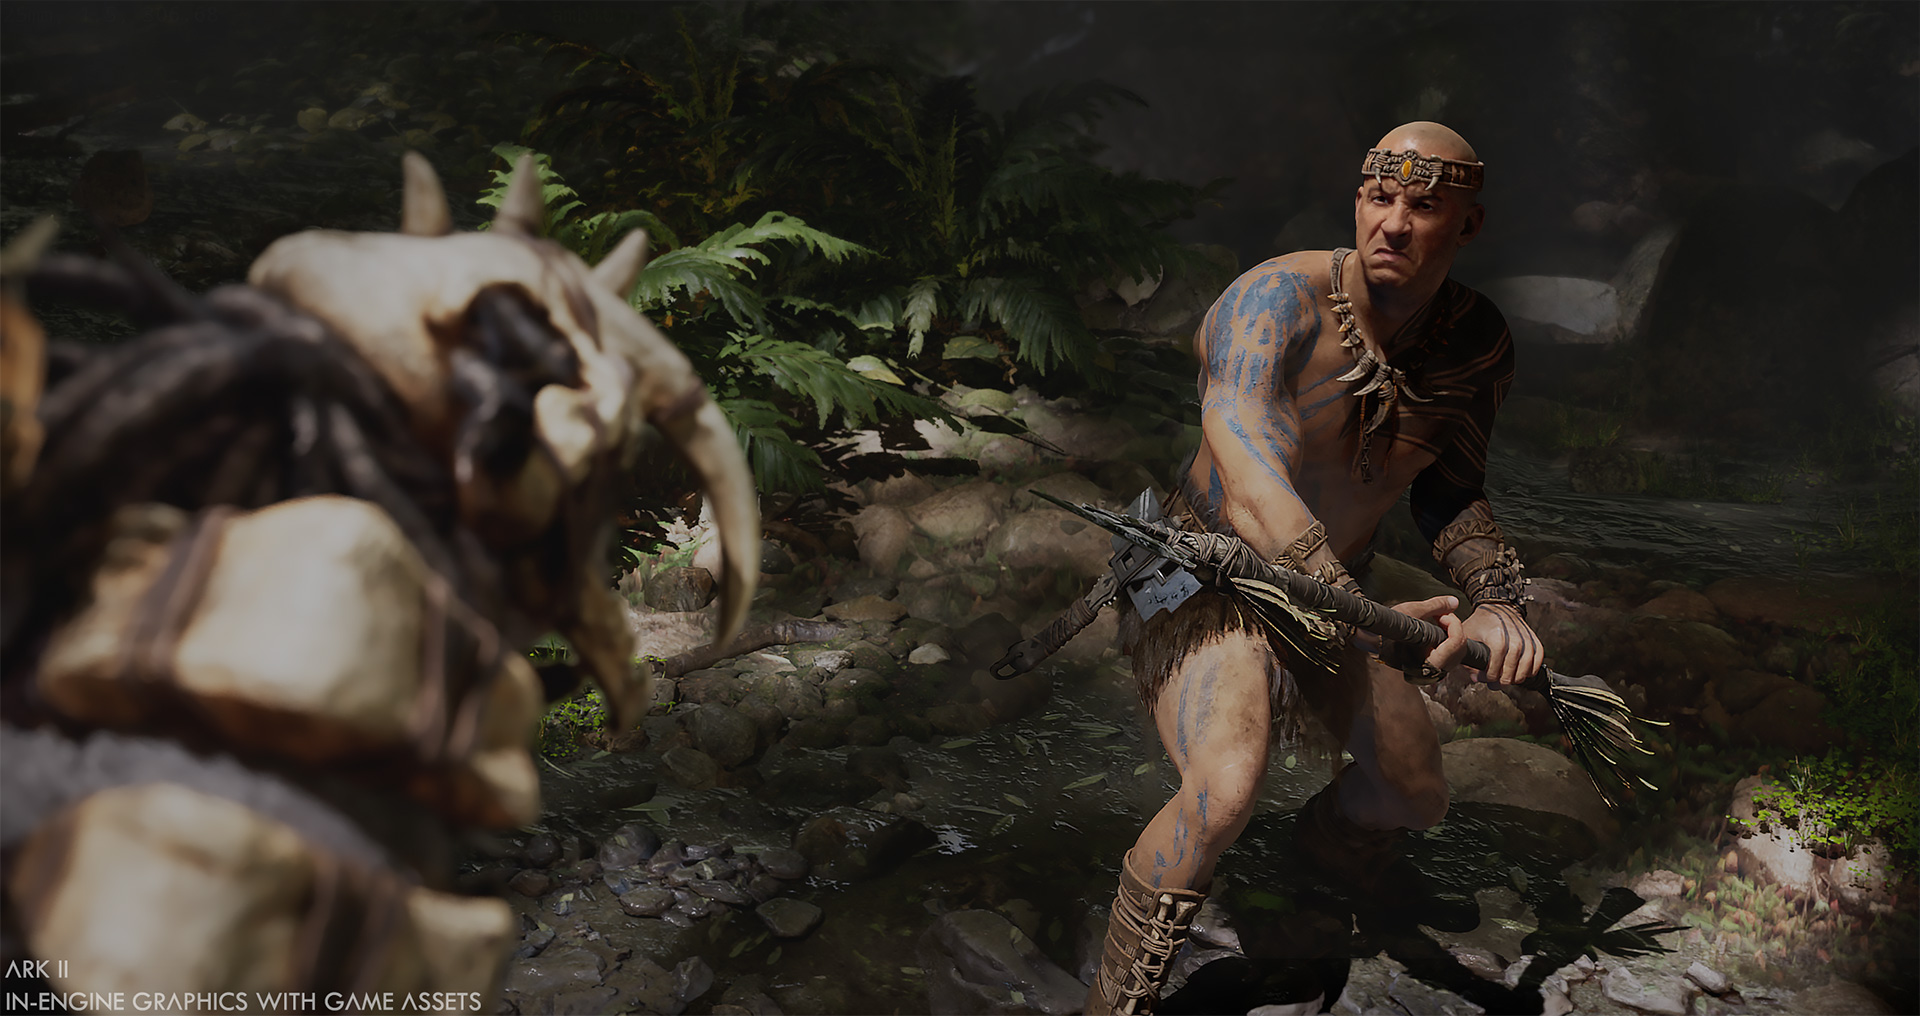 Studio Wildcard says Vin Diesel played over a thousand hours of Ark: Survival Evolved screenshot